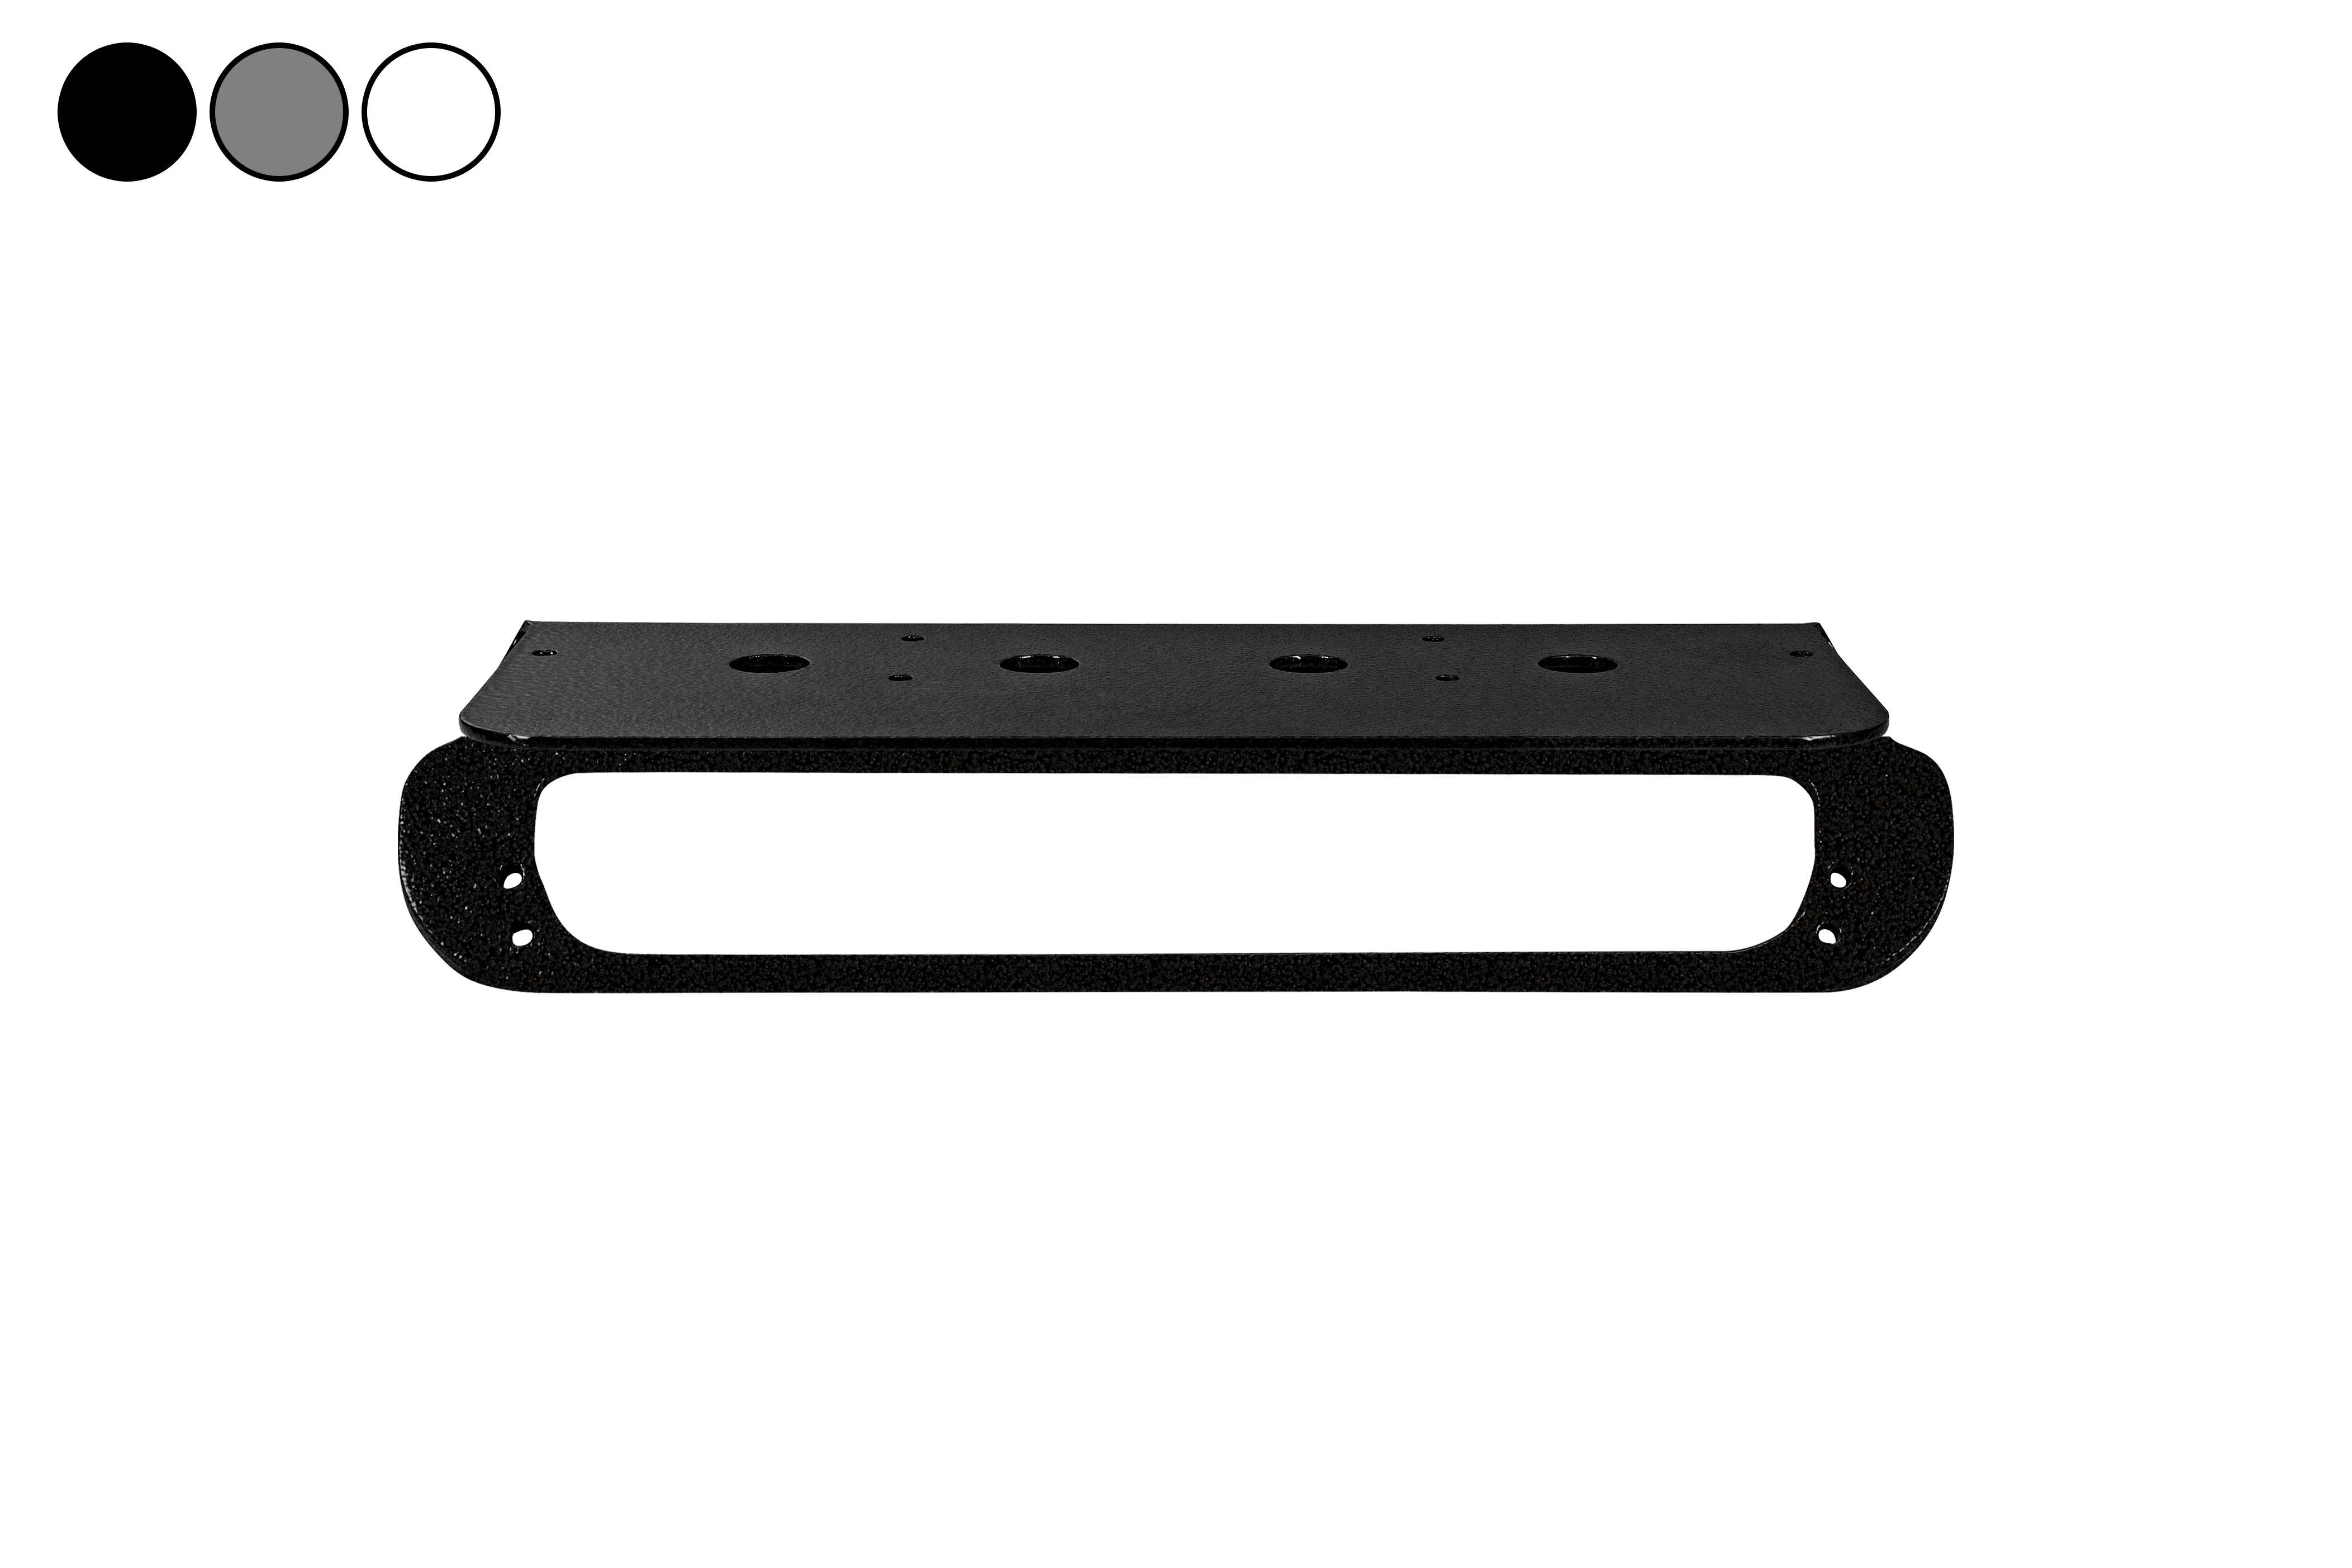 Antenna Permanent Mounting Plate for 2012 Chevrolet Silverado 1500 Truck